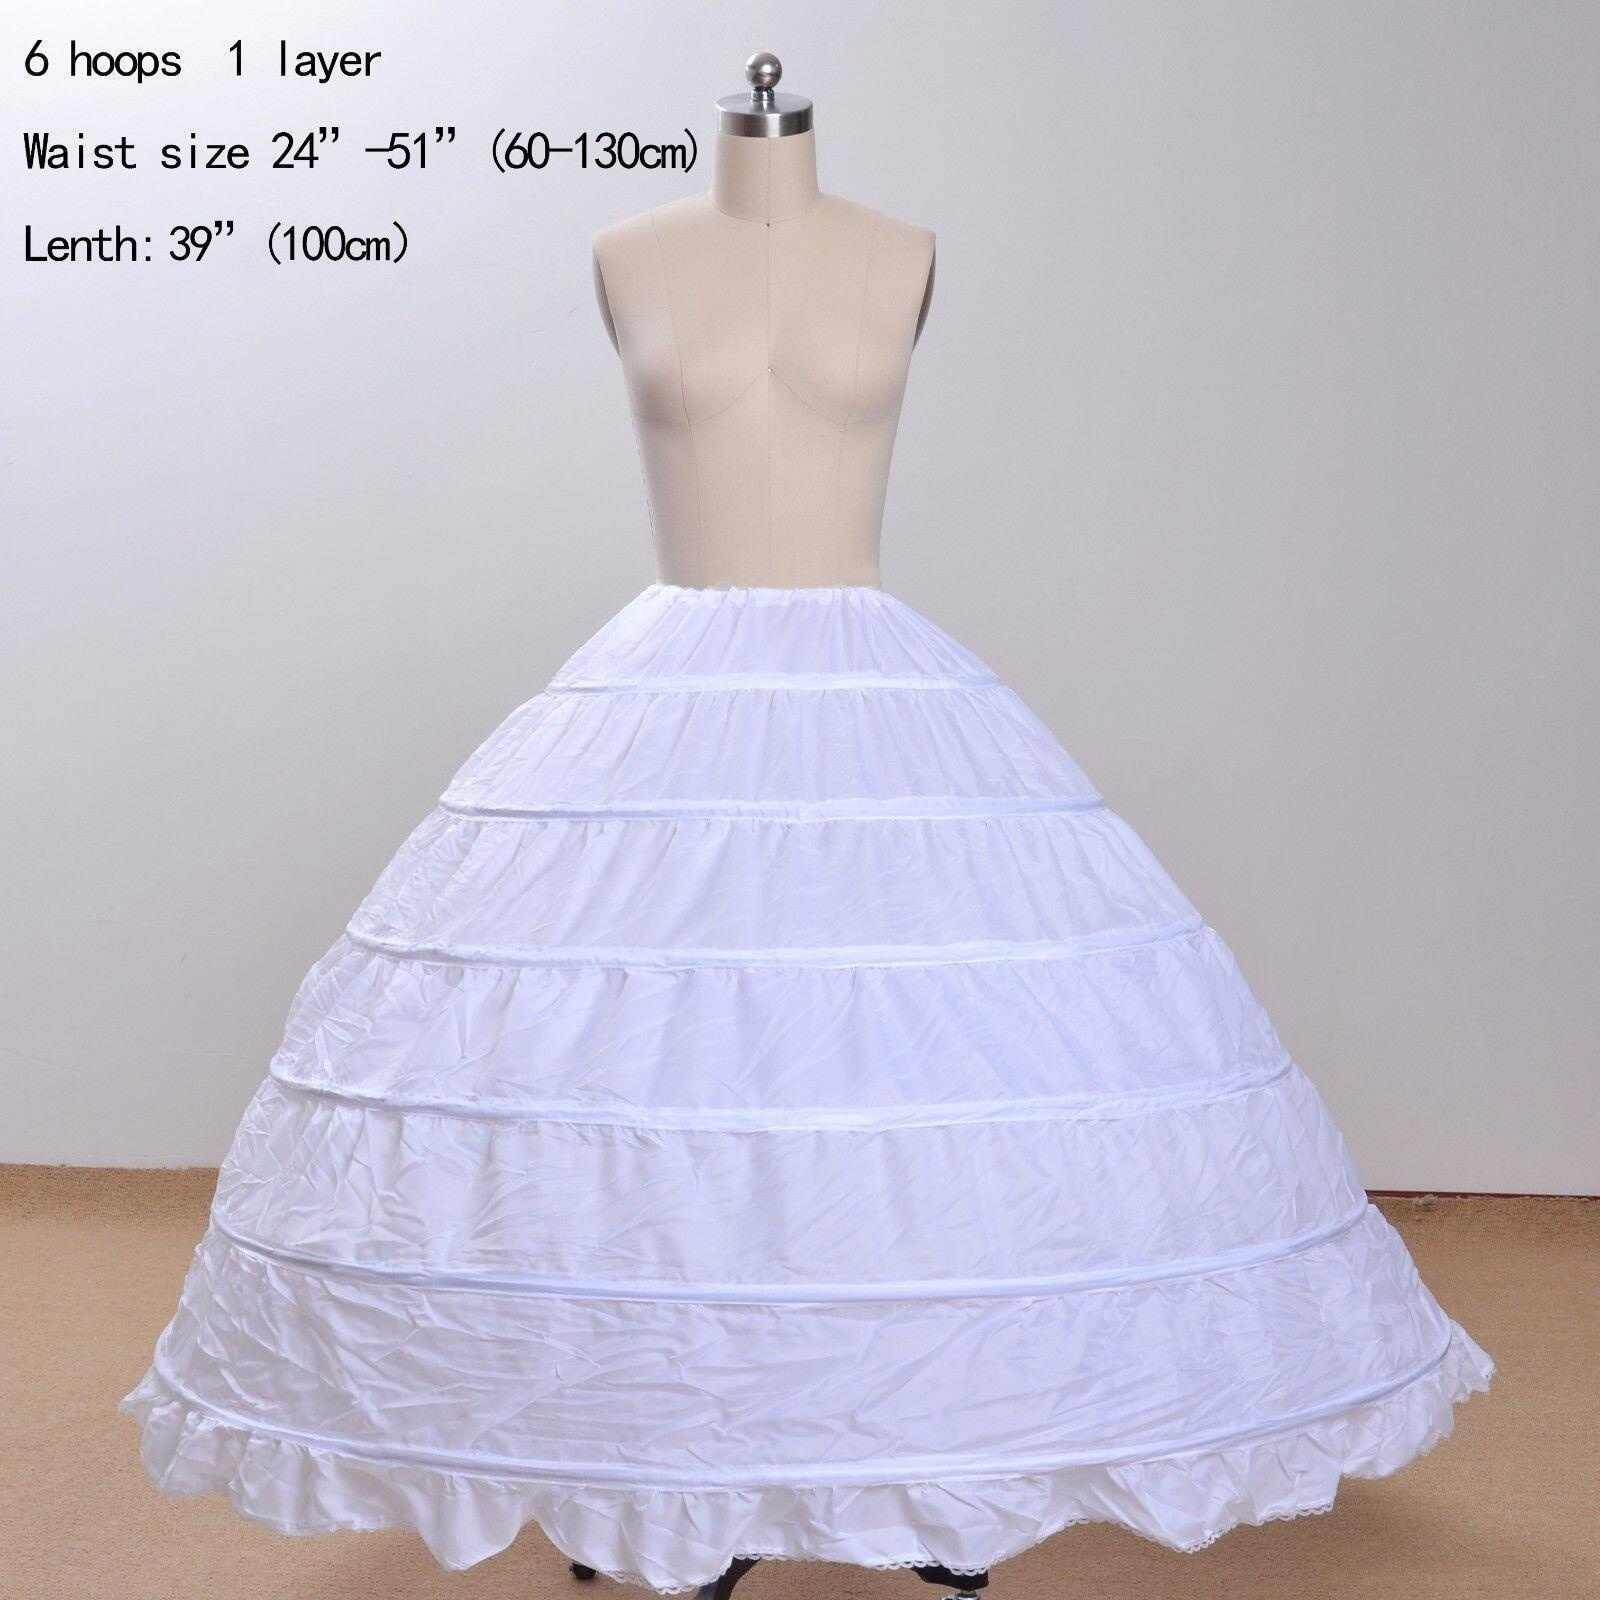 New Cheap 6 Hoops Wedding Accessories Ball Gown Petticoats For Wedding Dresses